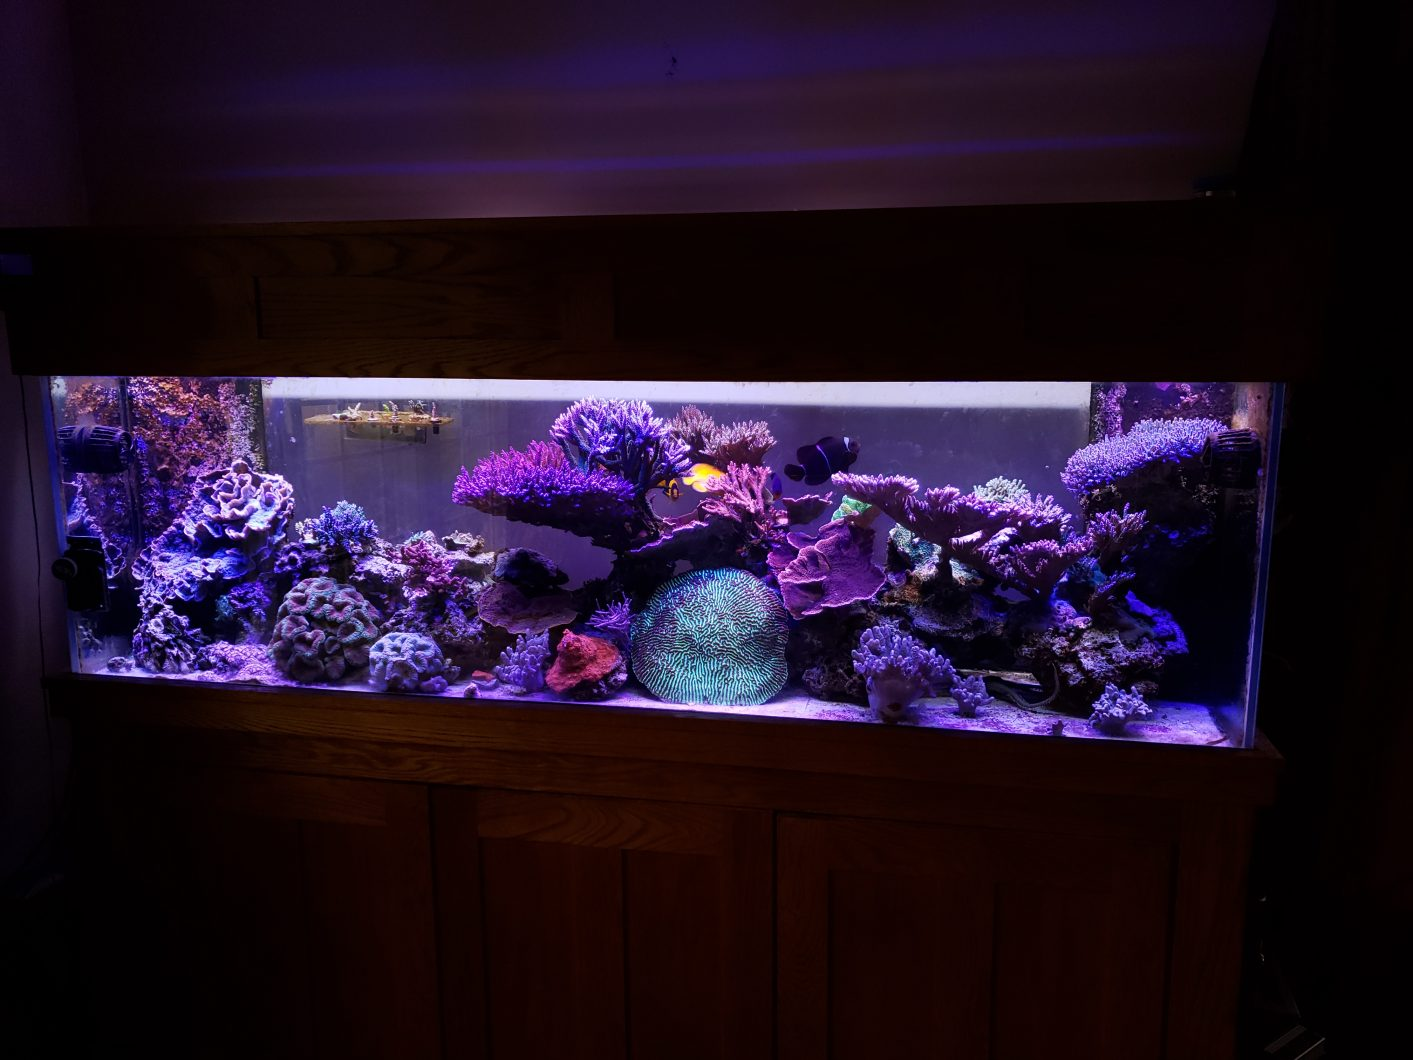 orphek-or90-bar-led-over-6-foot-wide-135g-sps-domininated-reef